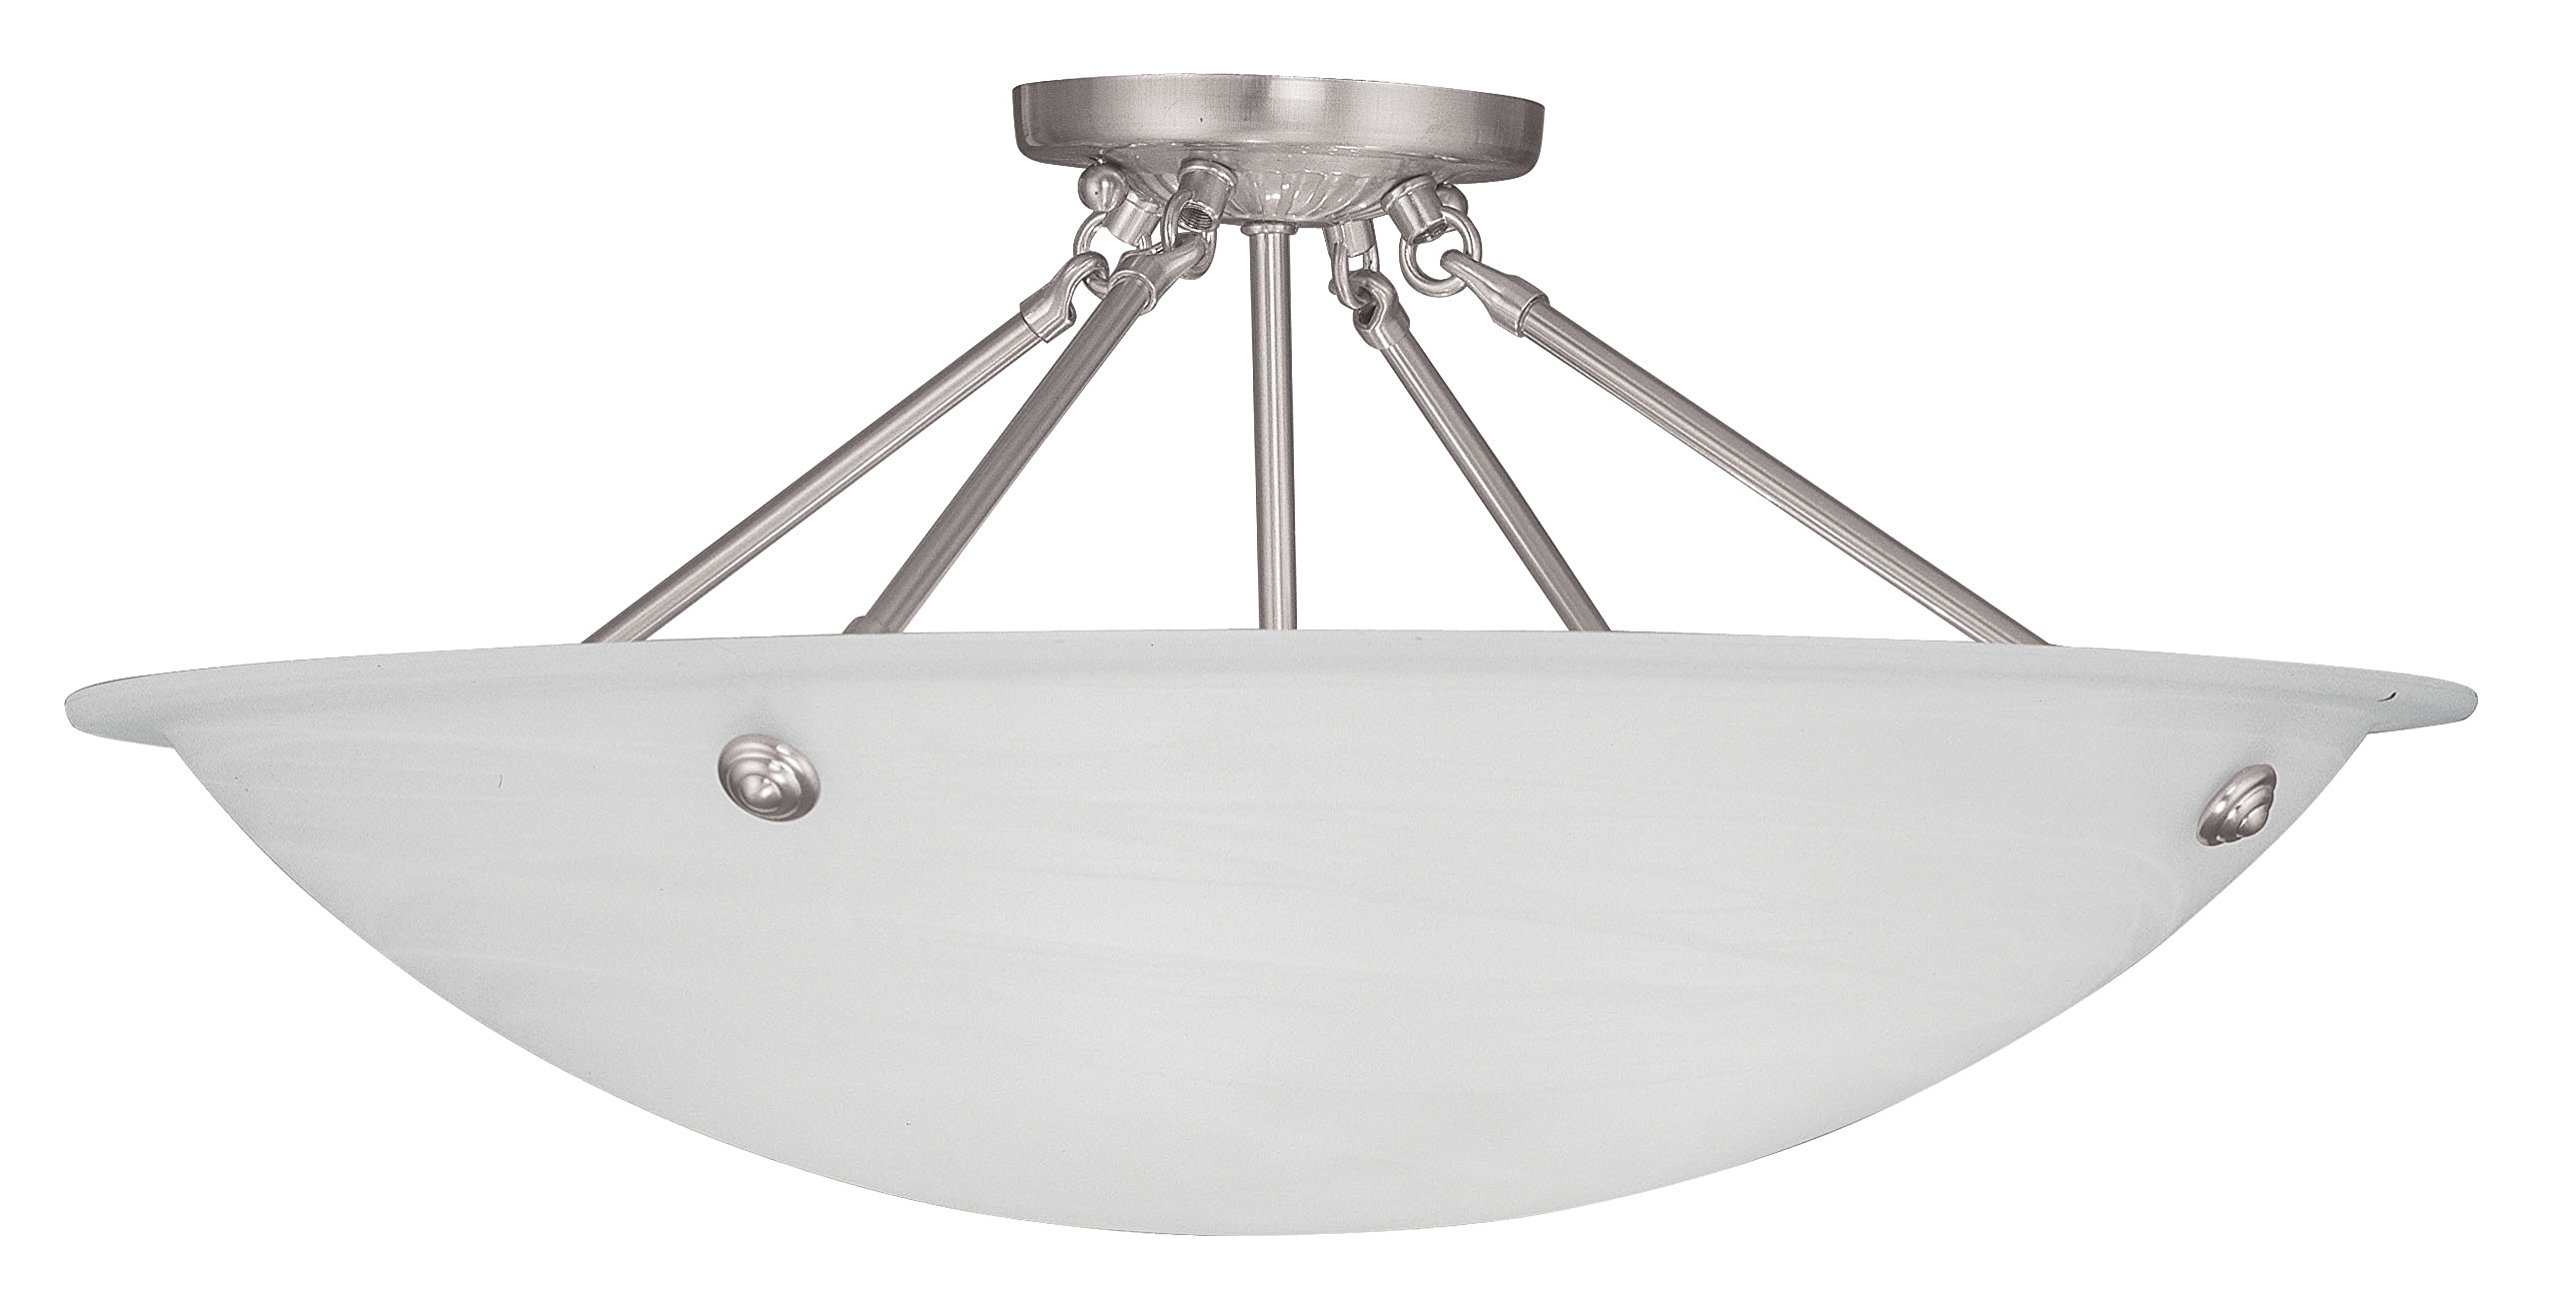 Livex Lighting 4275-91 Oasis 4-Light Ceiling Mount, Brushed Nickel